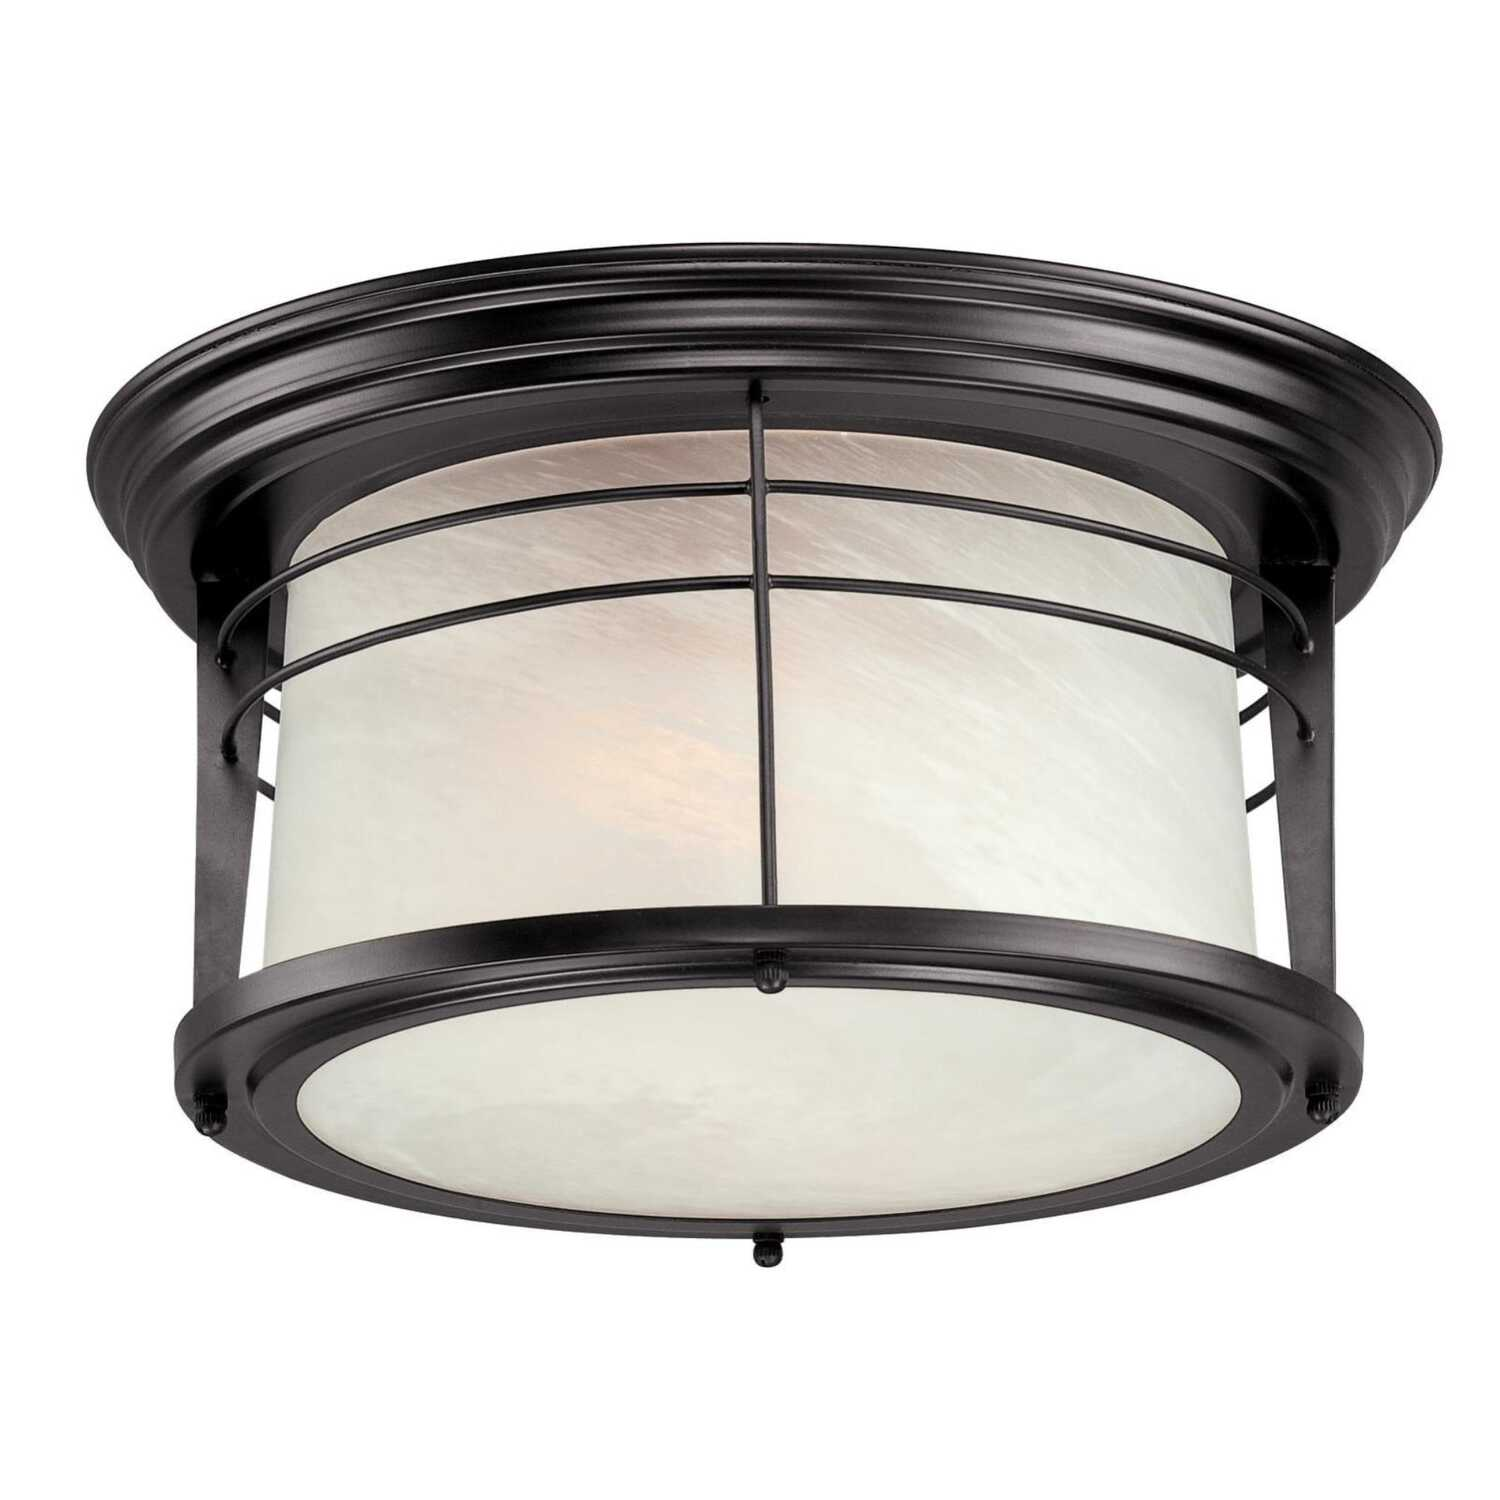 Westinghouse  Senecaville  13-1/4 in. W x 13.25 in. L x 7-1/2 in. H Ceiling Light